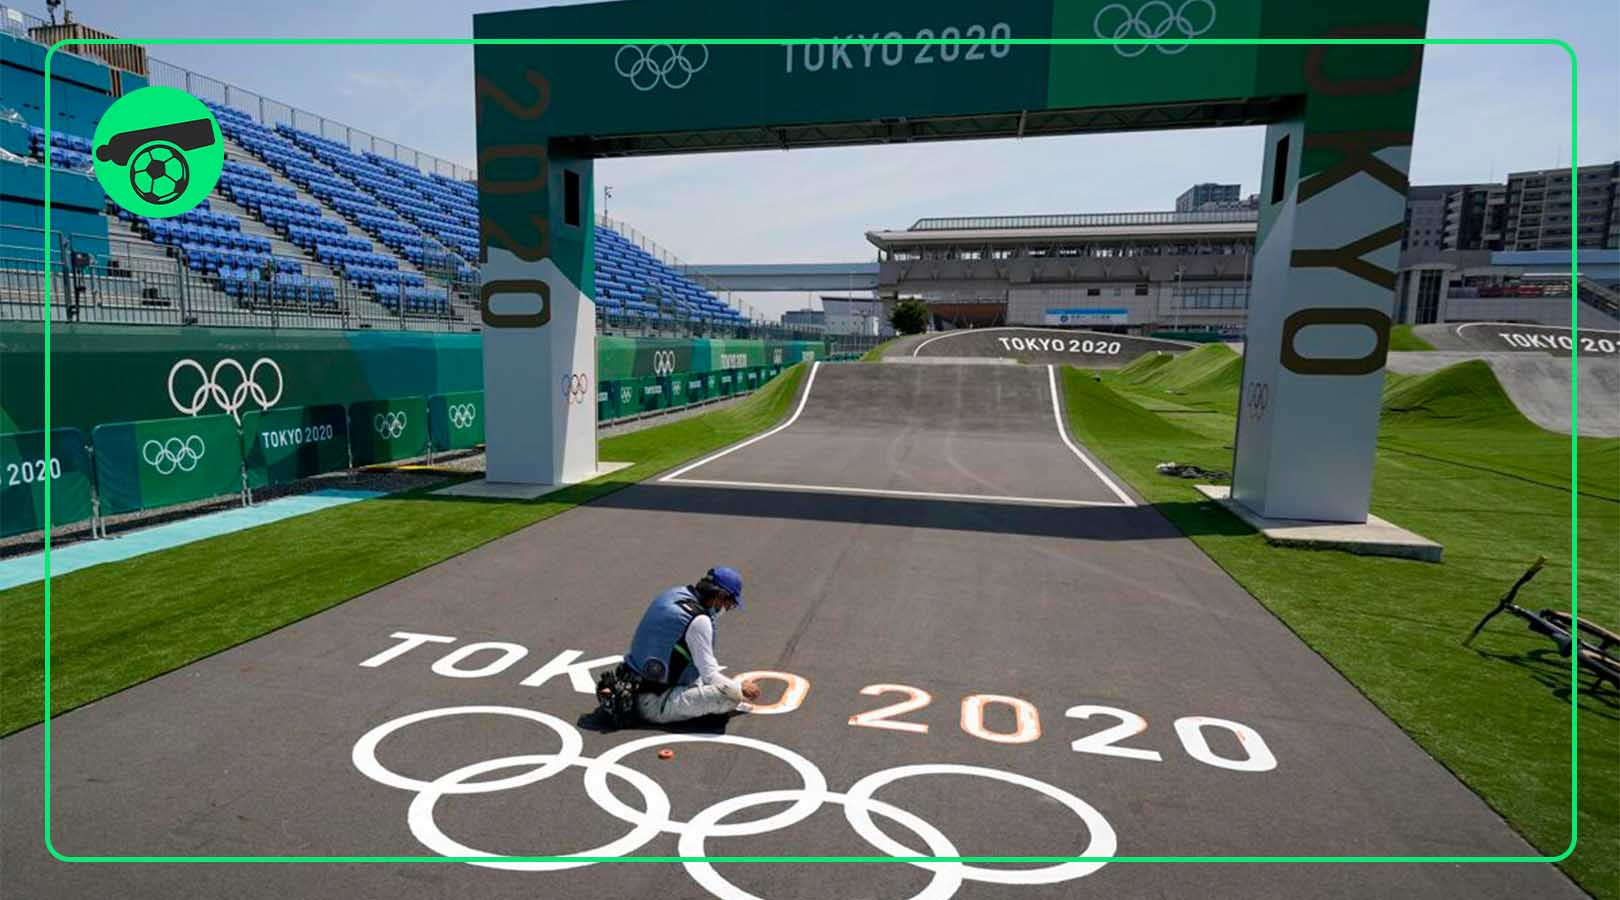 Tokyo Olympics with Covid-19 and 950 VIPs